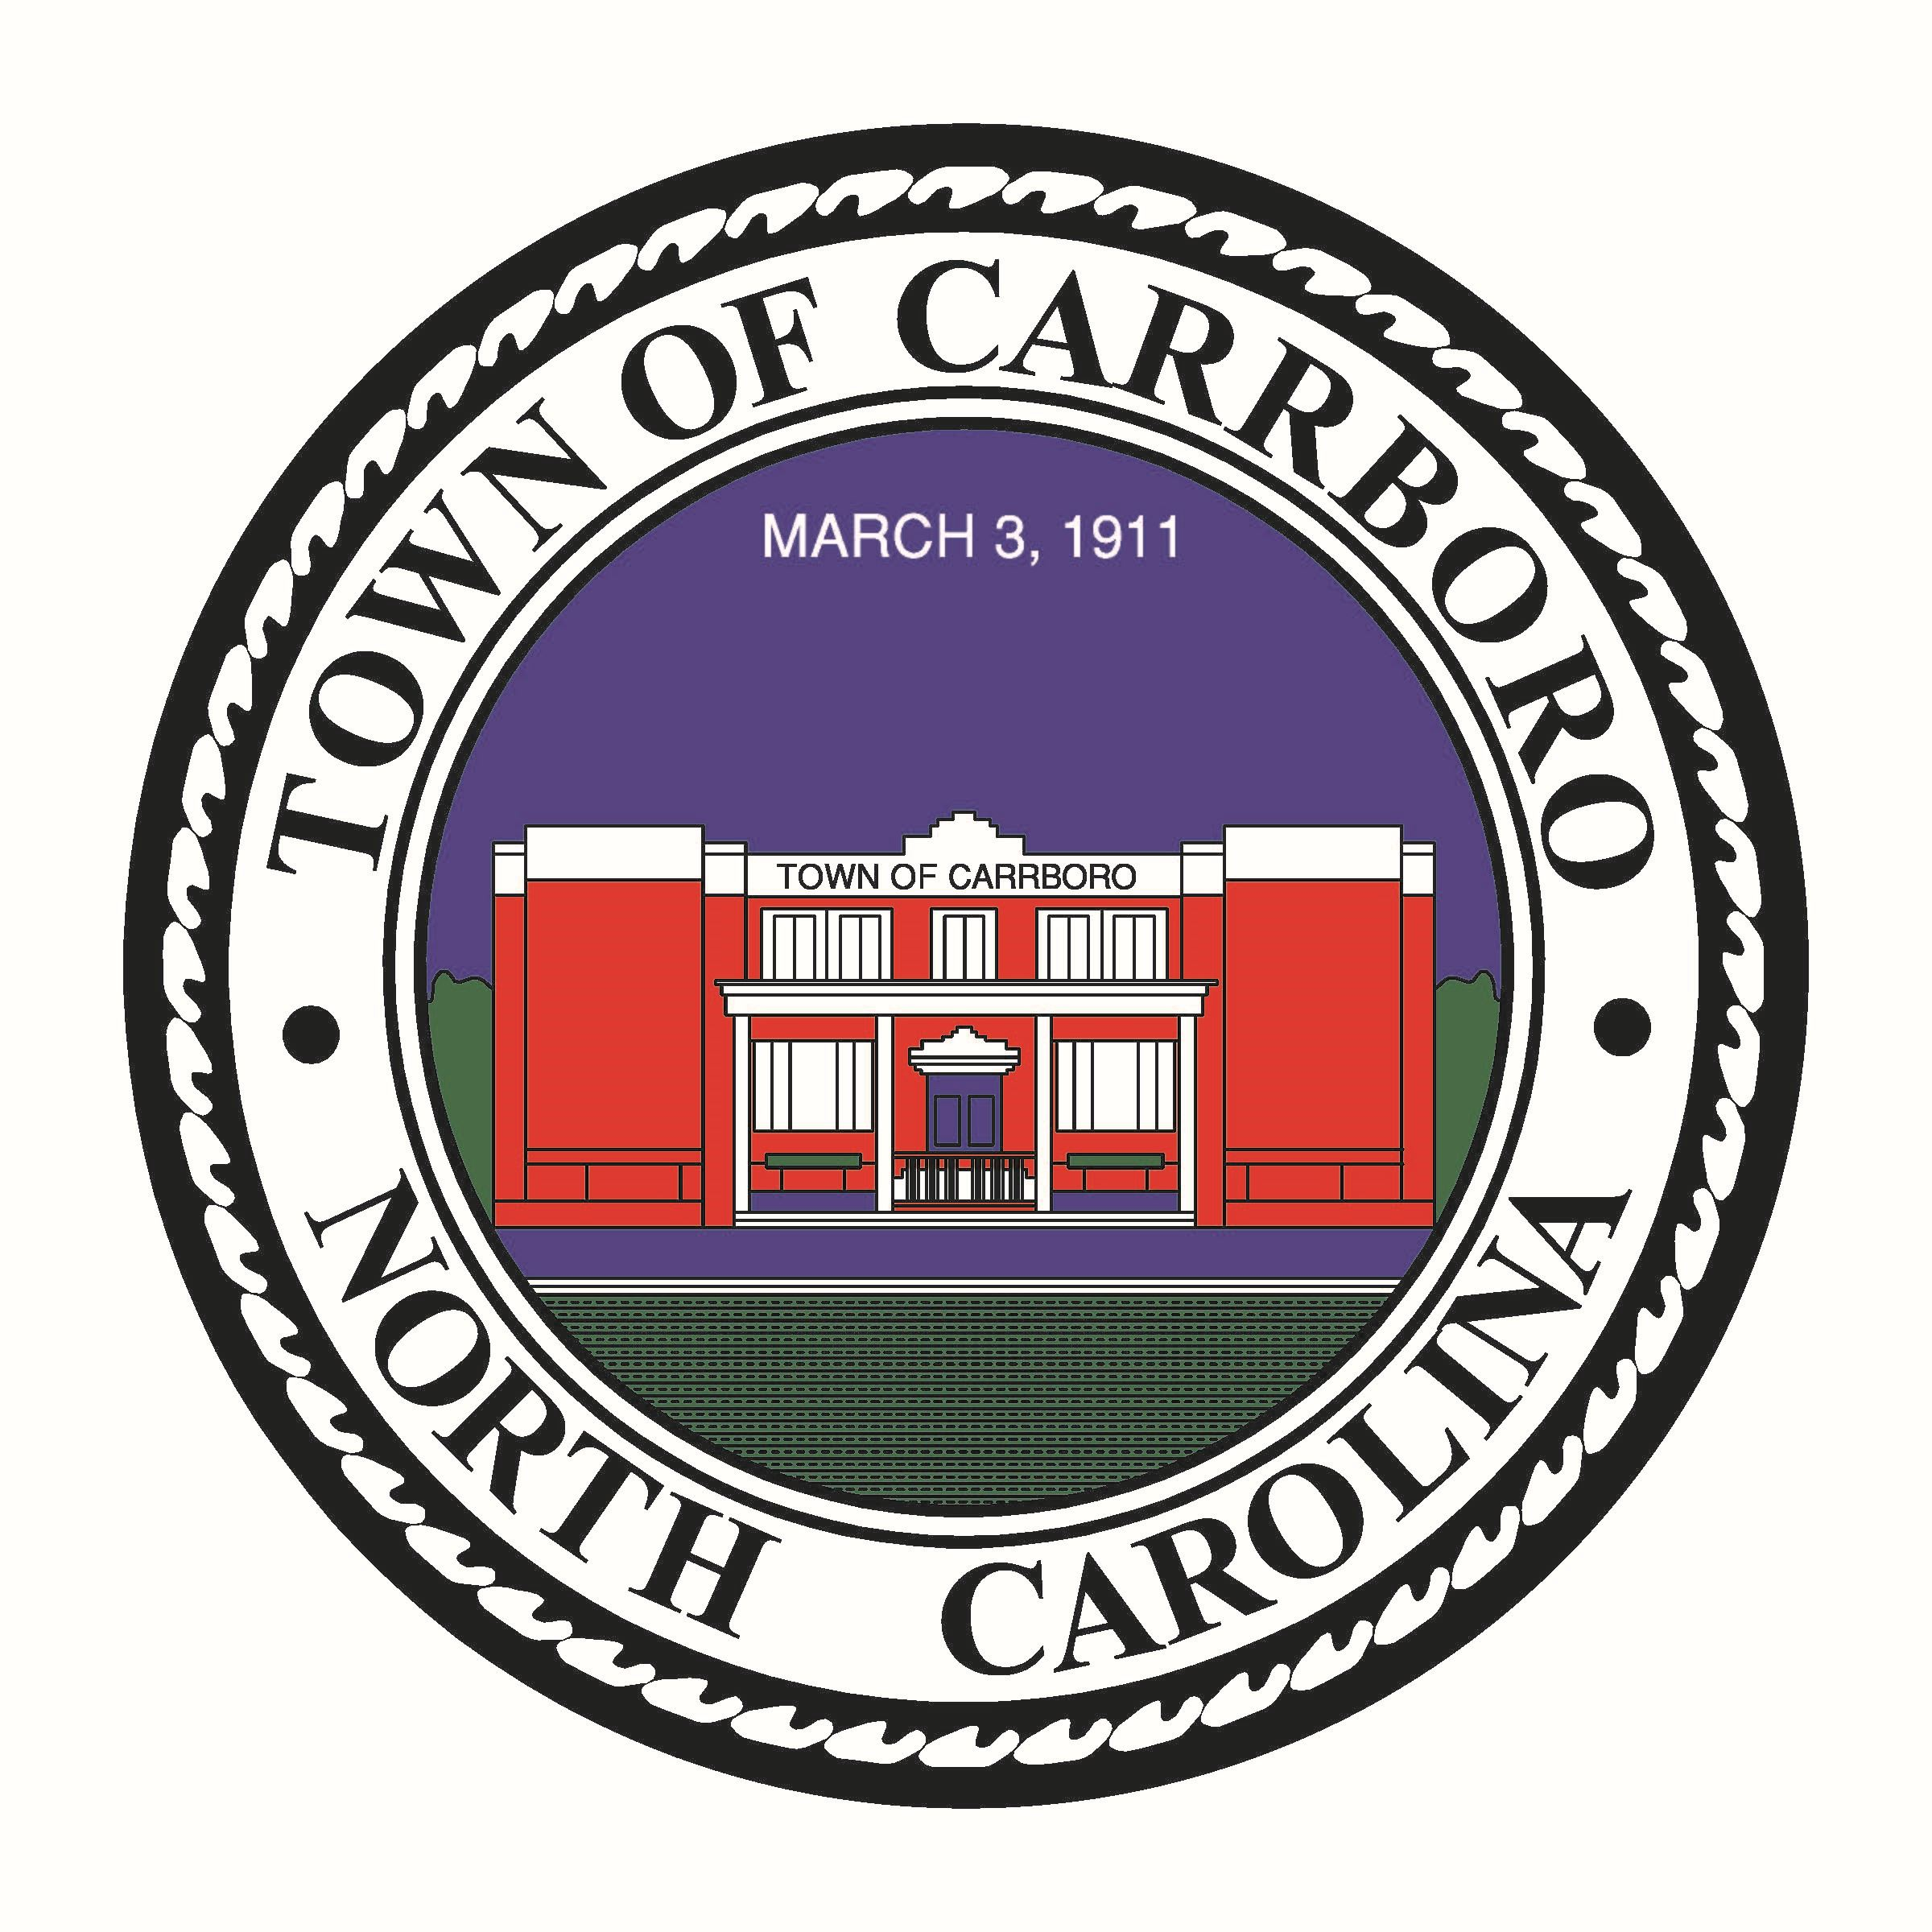 Carrboro, NC - Official Website